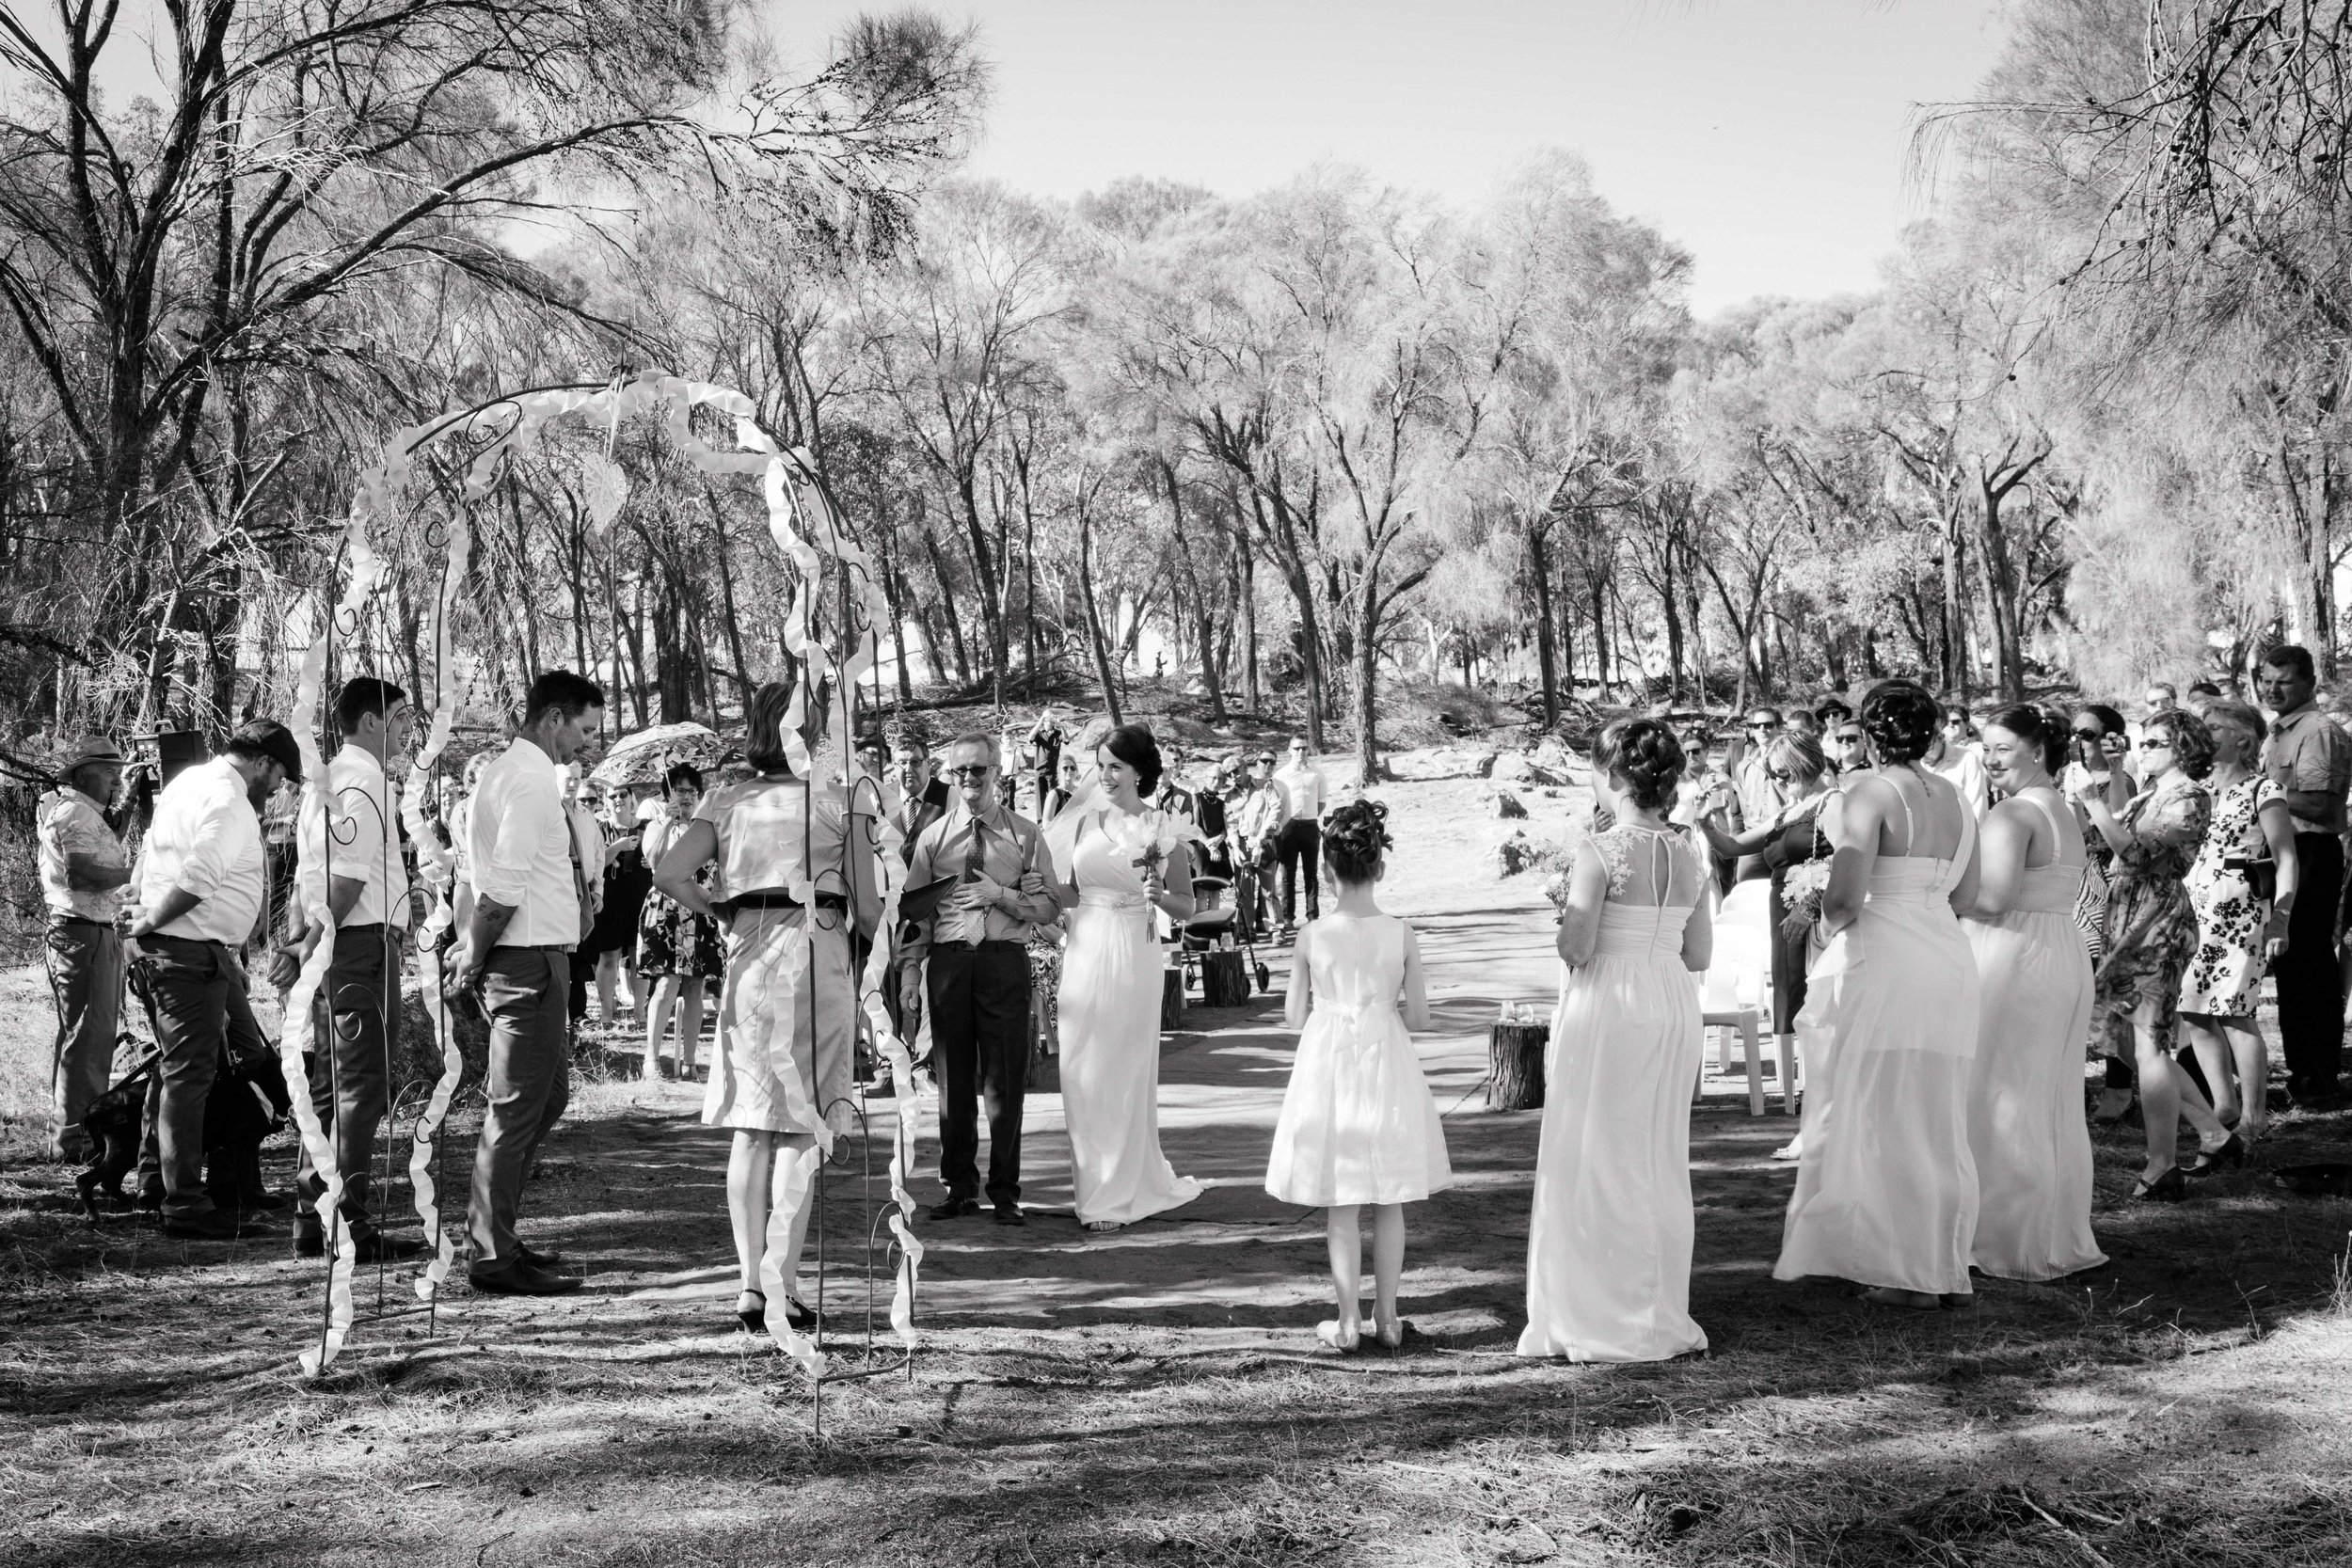 Rustc Rural Farm Wheatbelt Country Wedding Photographer Photography Candid Documentary (9).jpg